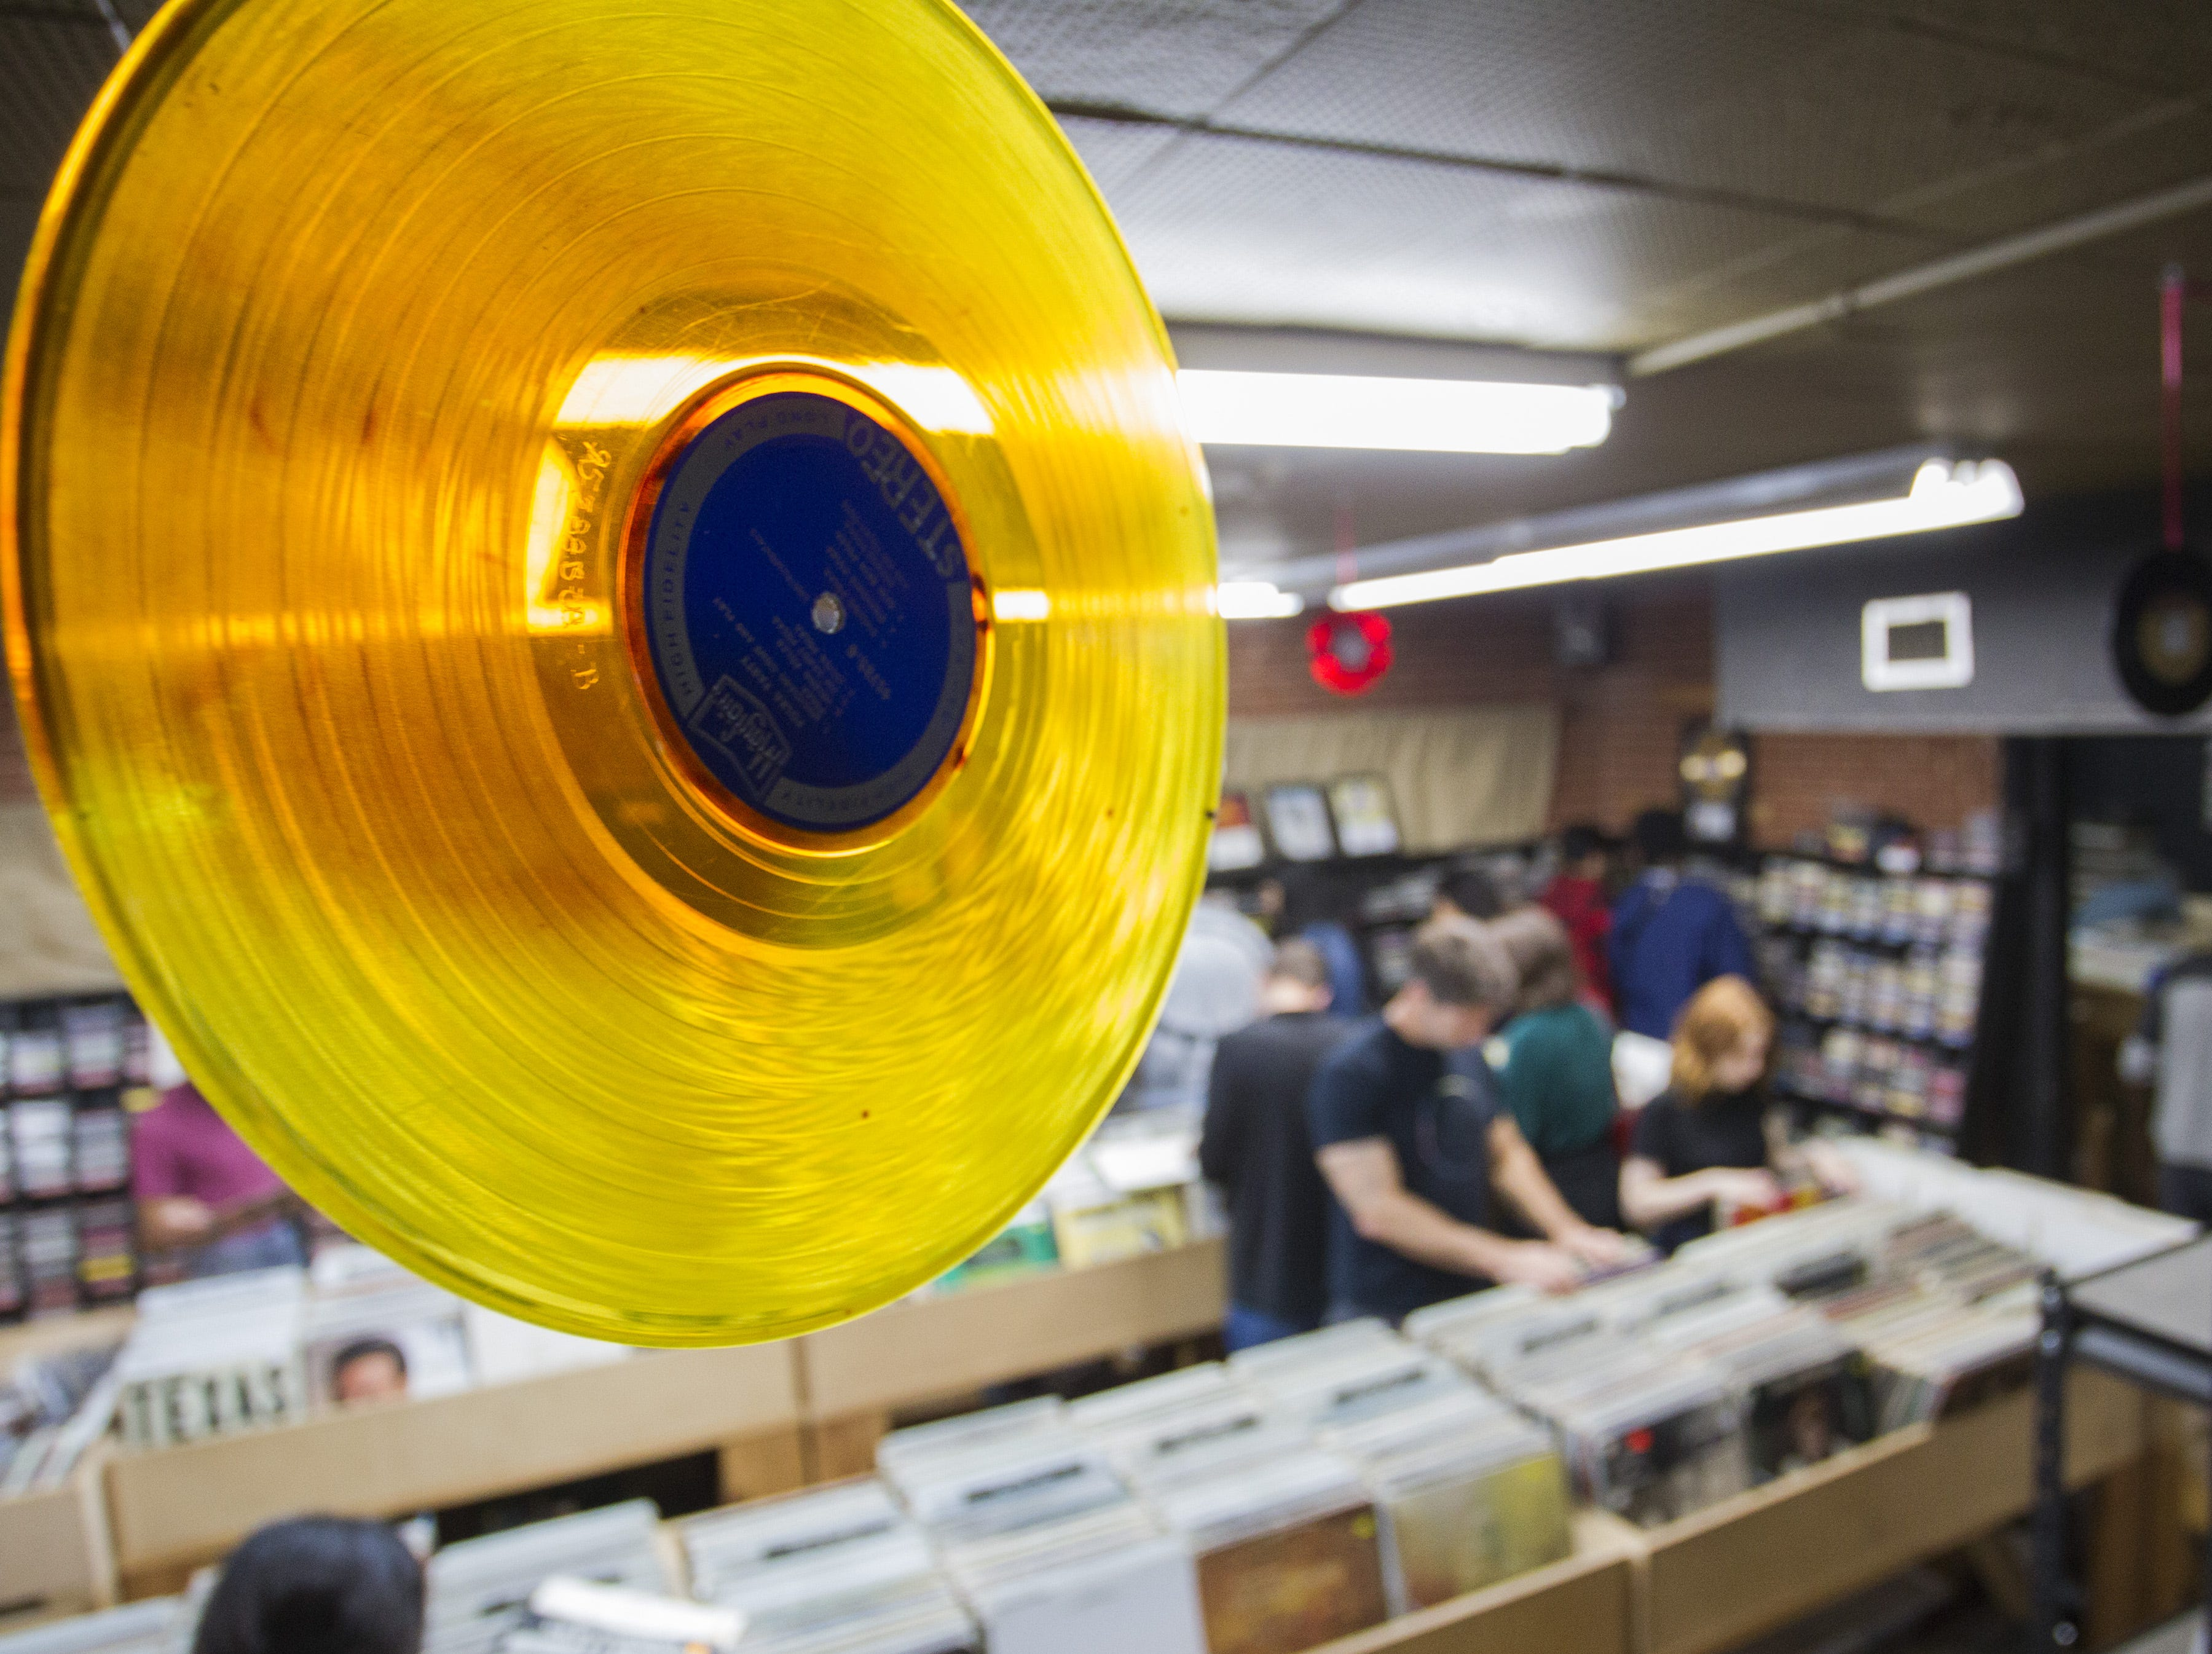 Records hang from the ceiling as music lovers sort through albums at Revolver Records in downtown Phoenix.